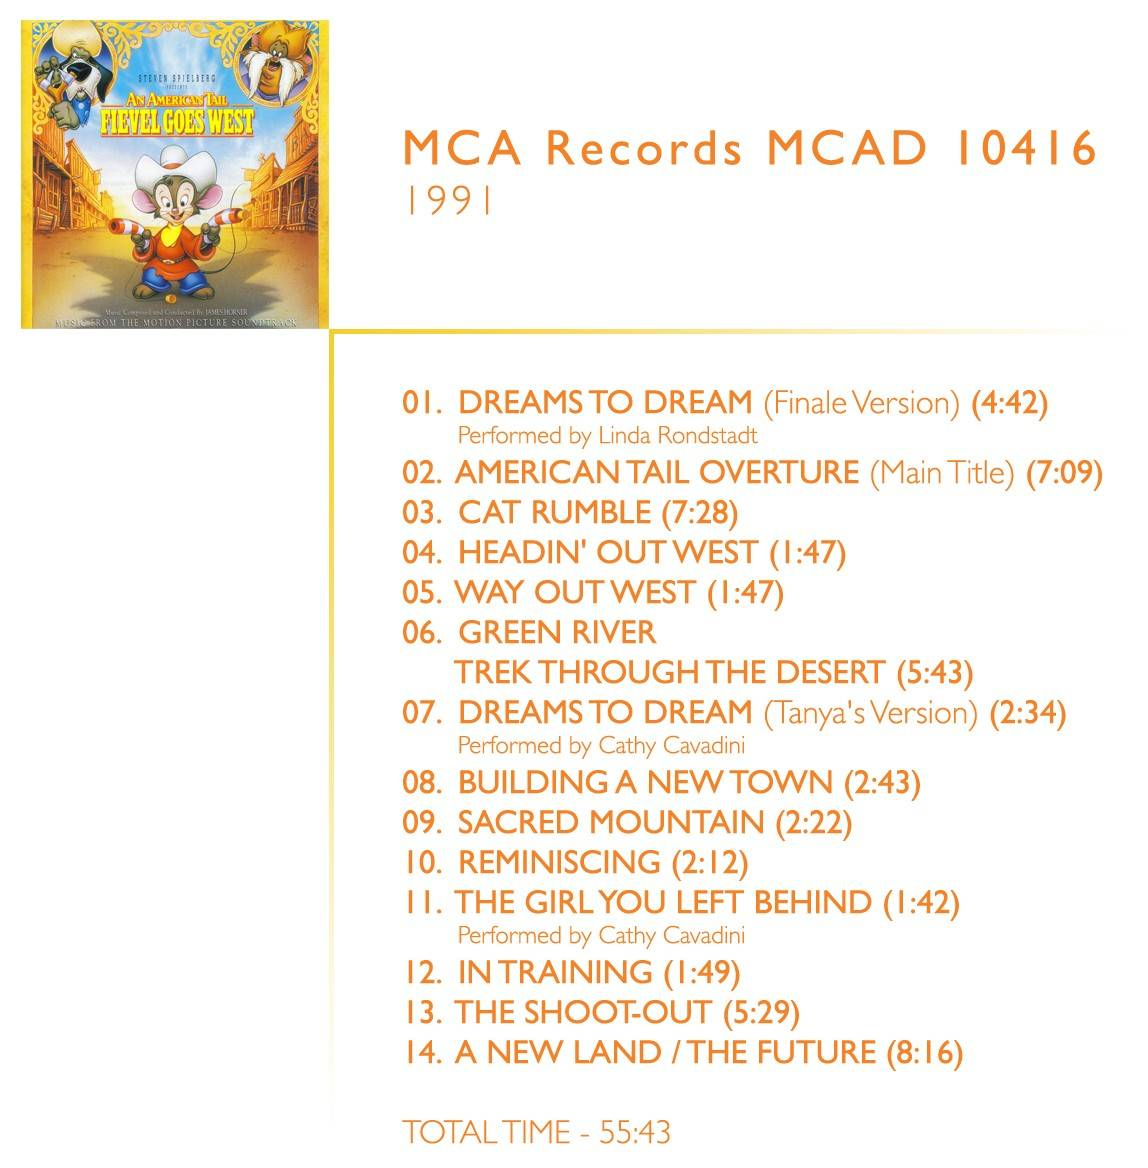 1.  	Dreams To Dream (Finale Version) (04:42) Performed by Linda Rondstadt 2.  	American Tail Overture (Main Title) (07:09) 3.  	Cat Rumble (07:28) 4.  	Headin' Out West (01:47) 5.  	Way Out West (01:47) 6.  	Green River / Trek Through The Desert (05:43) 7.  	Dreams To Dream (Tanya's Version) (02:34) Performed by Cathy Cavadini 8.  	Building A New Town (02:43) 9.  	Sacred Mountain (02:22) 10.  	Reminiscing (02:12) 11.  	The Girl You Left Behind (01:42) Performed by Cathy Cavadini 12.  	In Training (01:49) 13.  	The Shoot-Out (05:29) 14.  	A New Land - The Future (08:16)